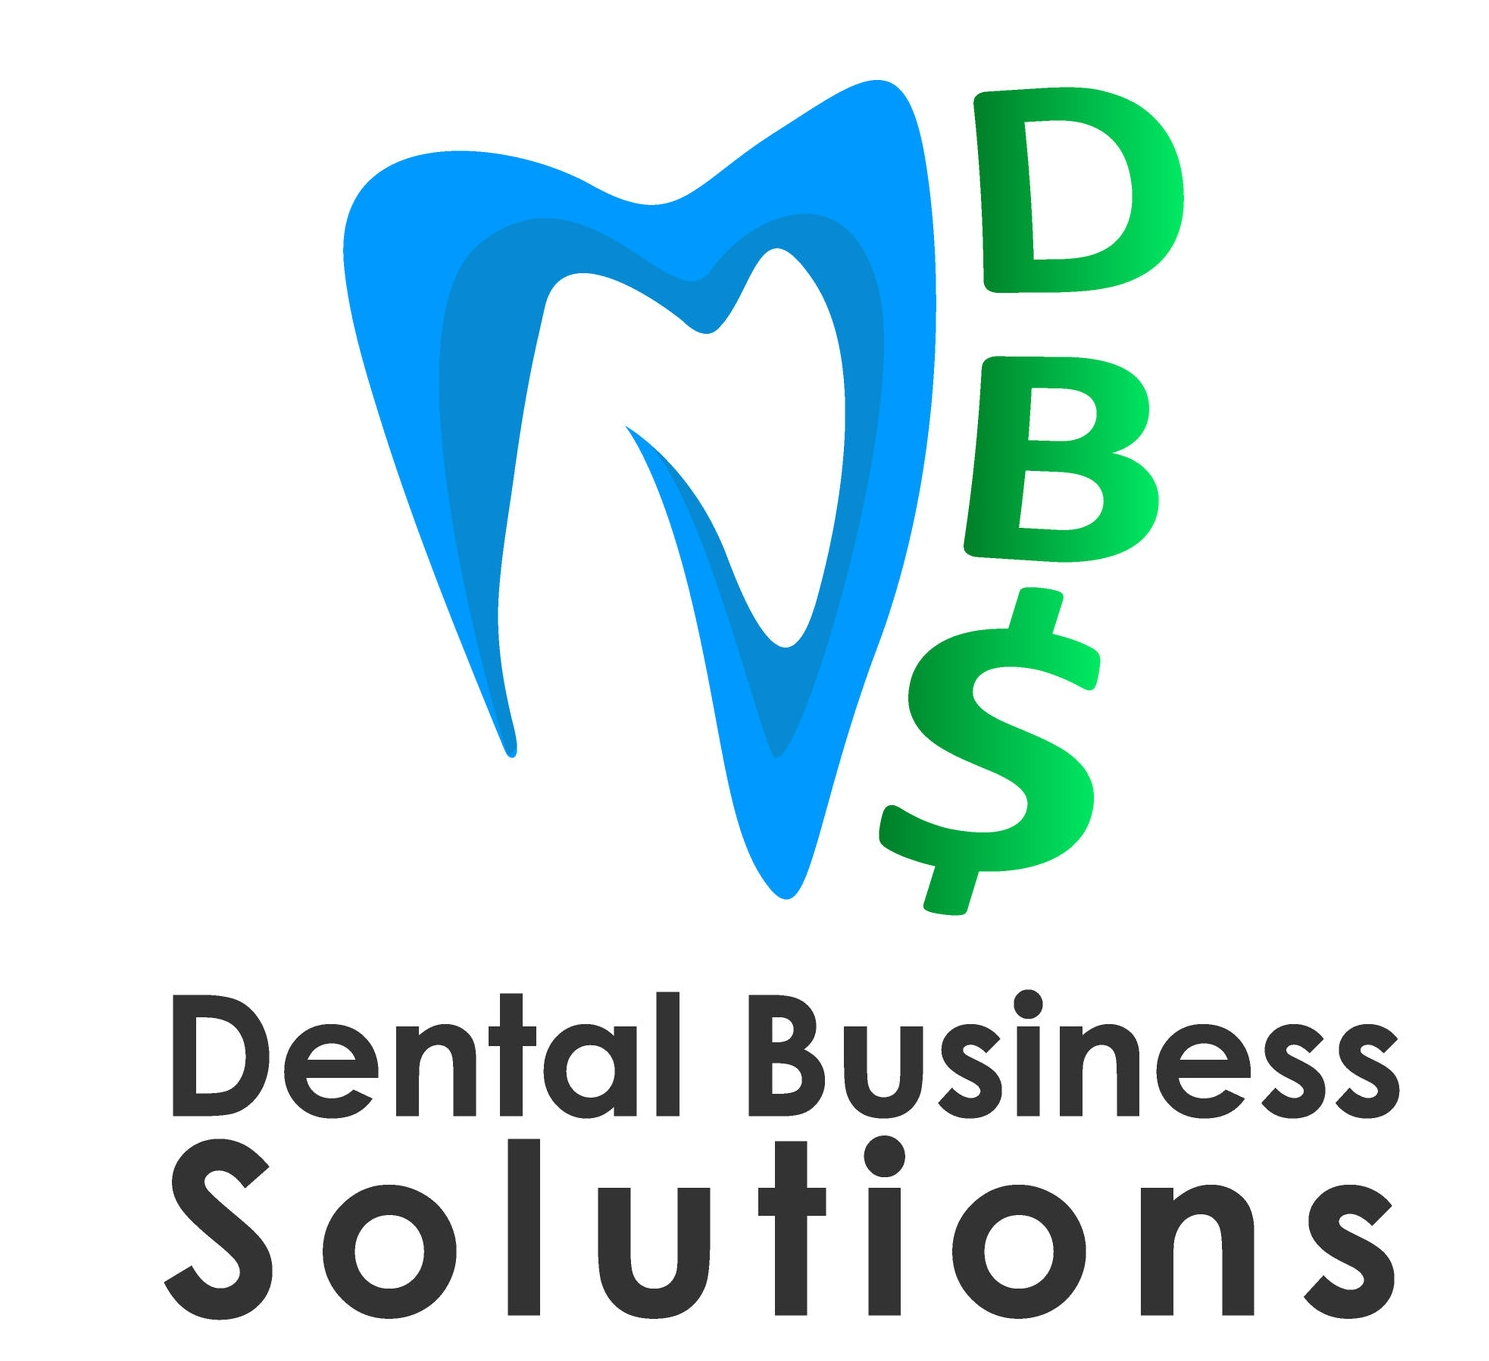 Dental Business Solutions